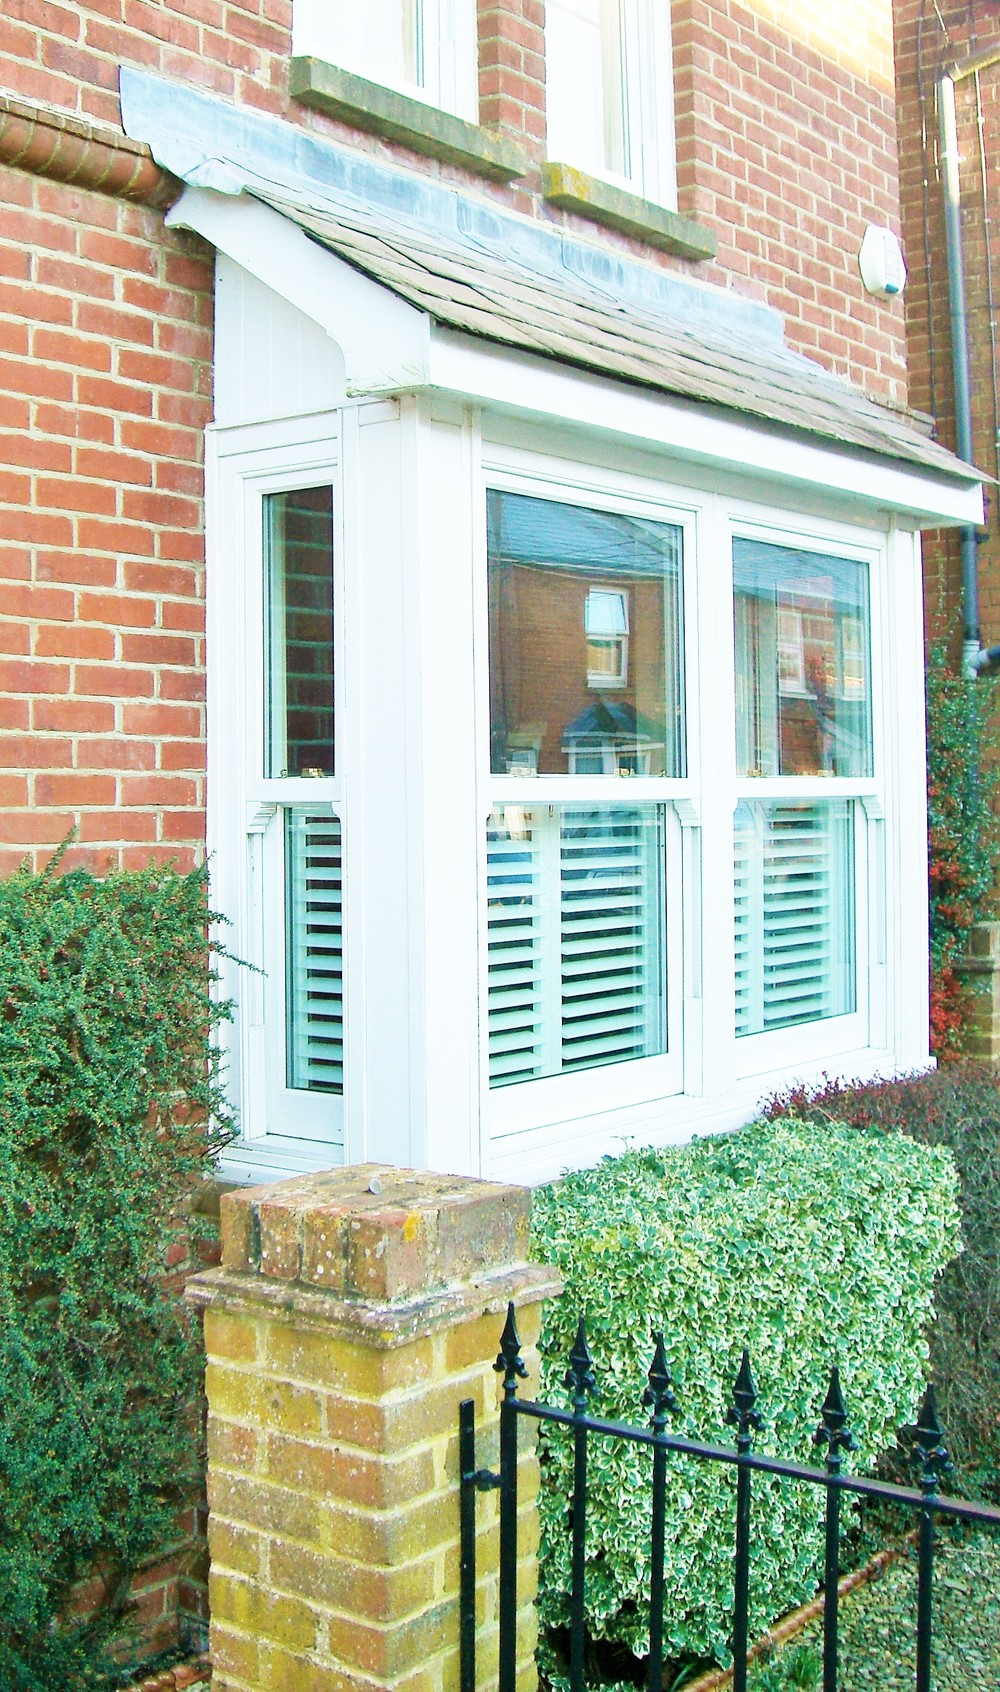 Wooden cafe style shutters Christchurch Dorset